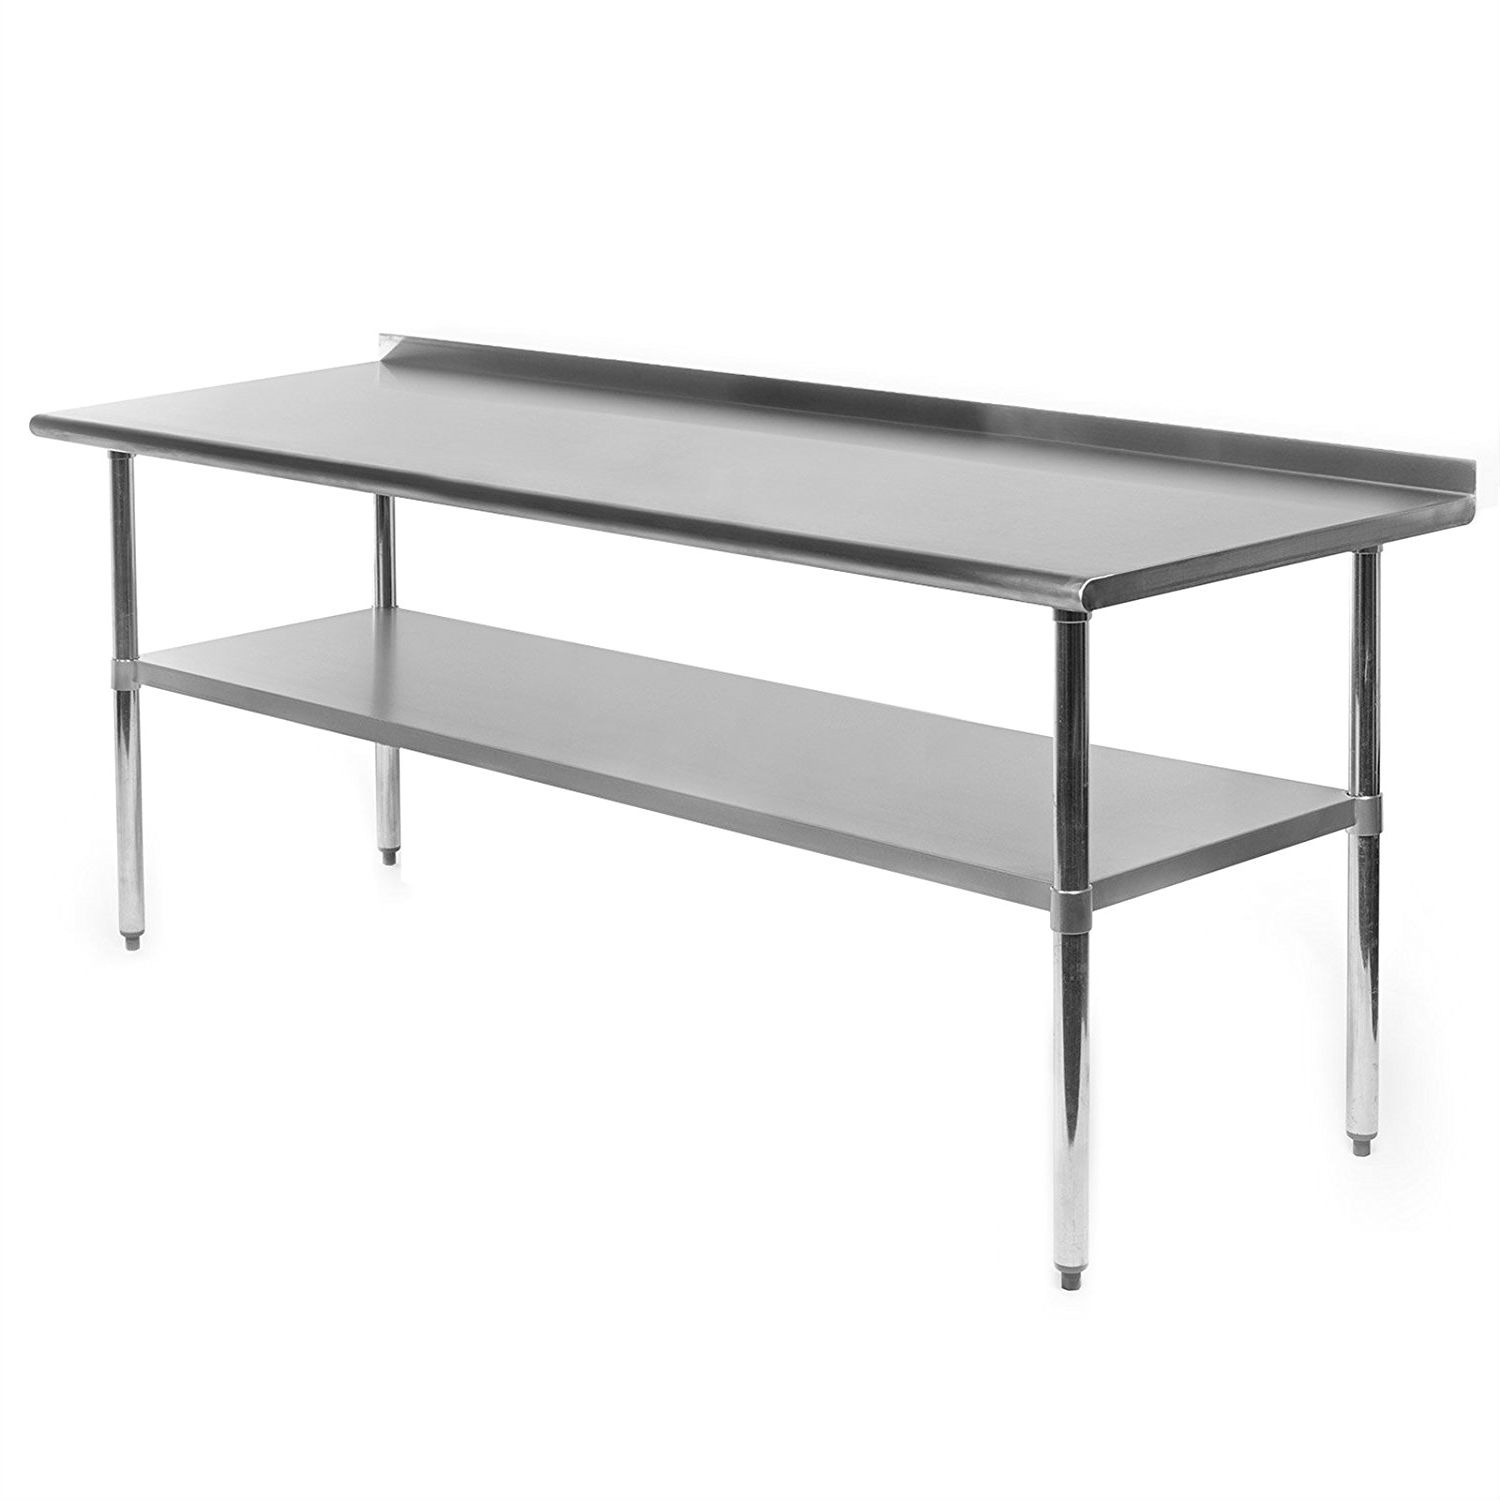 Stainless Steel 72 x 30 inch Kitchen Restaurant Prep Work Table with ...